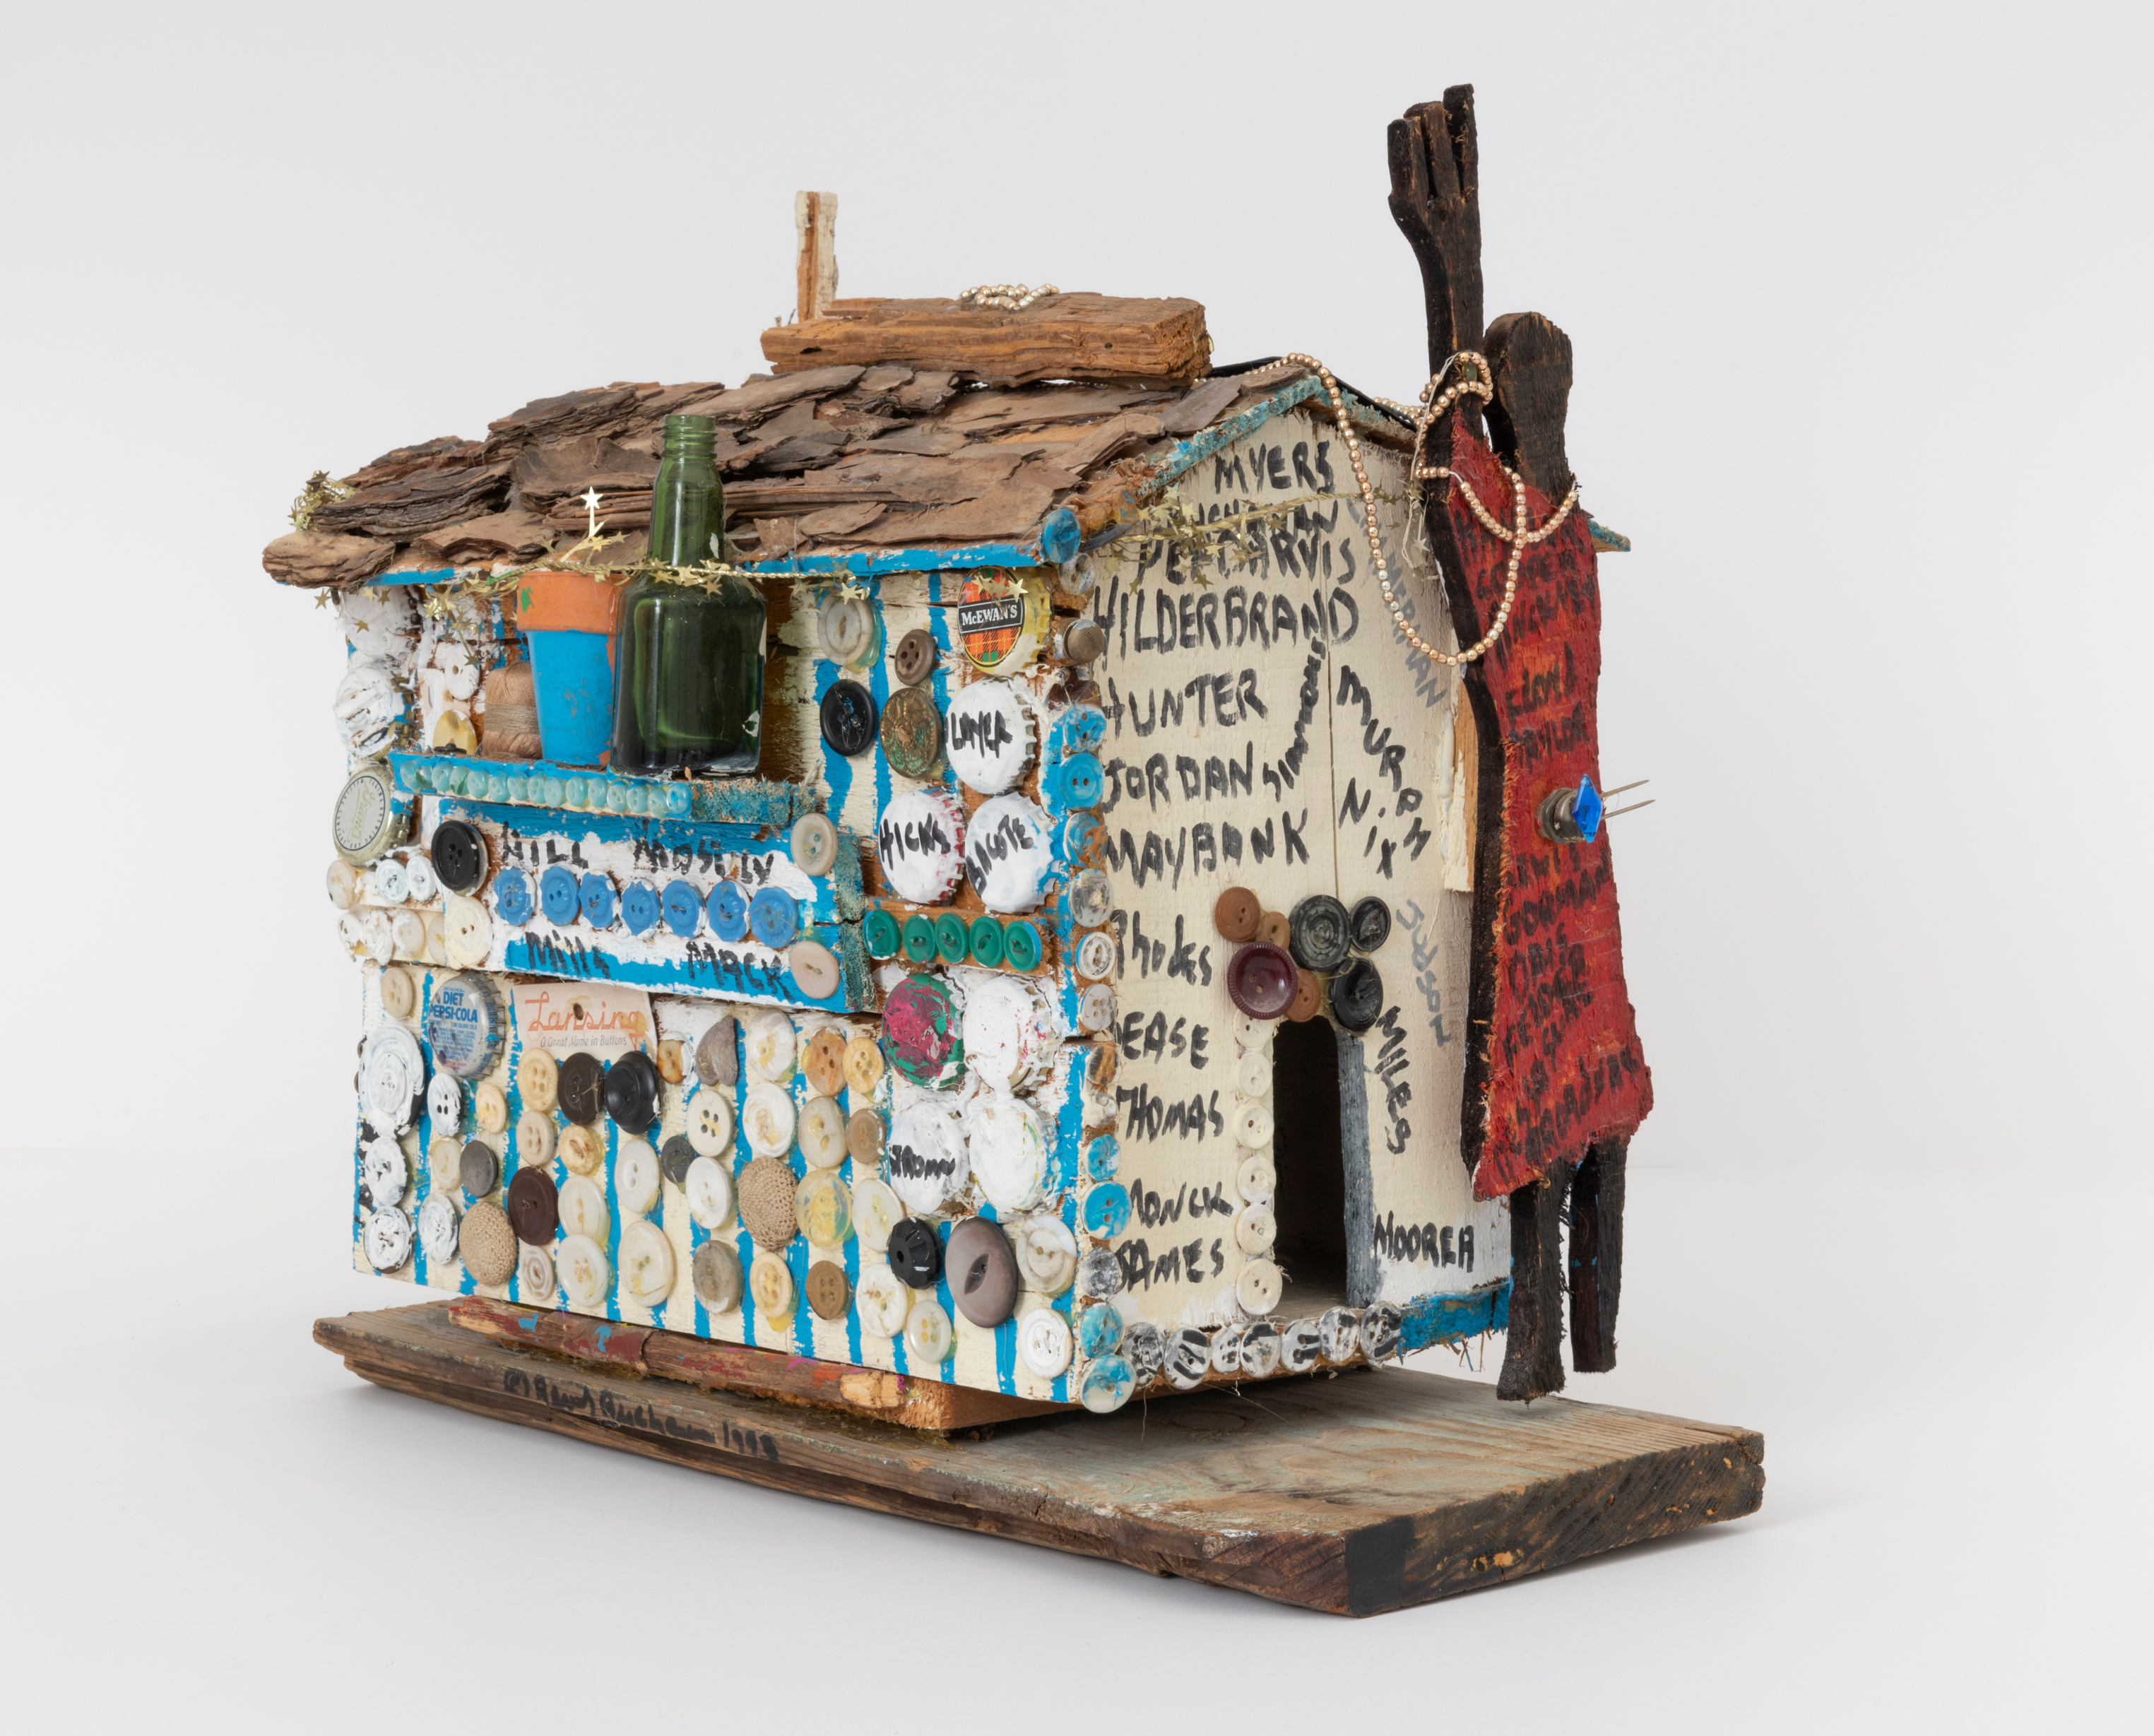 Beverly Buchanan, Orangeburg County Family House, 1993. Paint, sharpie, garland, necklace, wood chips, bark, buttons, bottle caps, license plate, film canister, thumbtacks, clay pot, glass bottle, thread and glue on wood. Image courtesy Andrew Edlin gallery, New York.